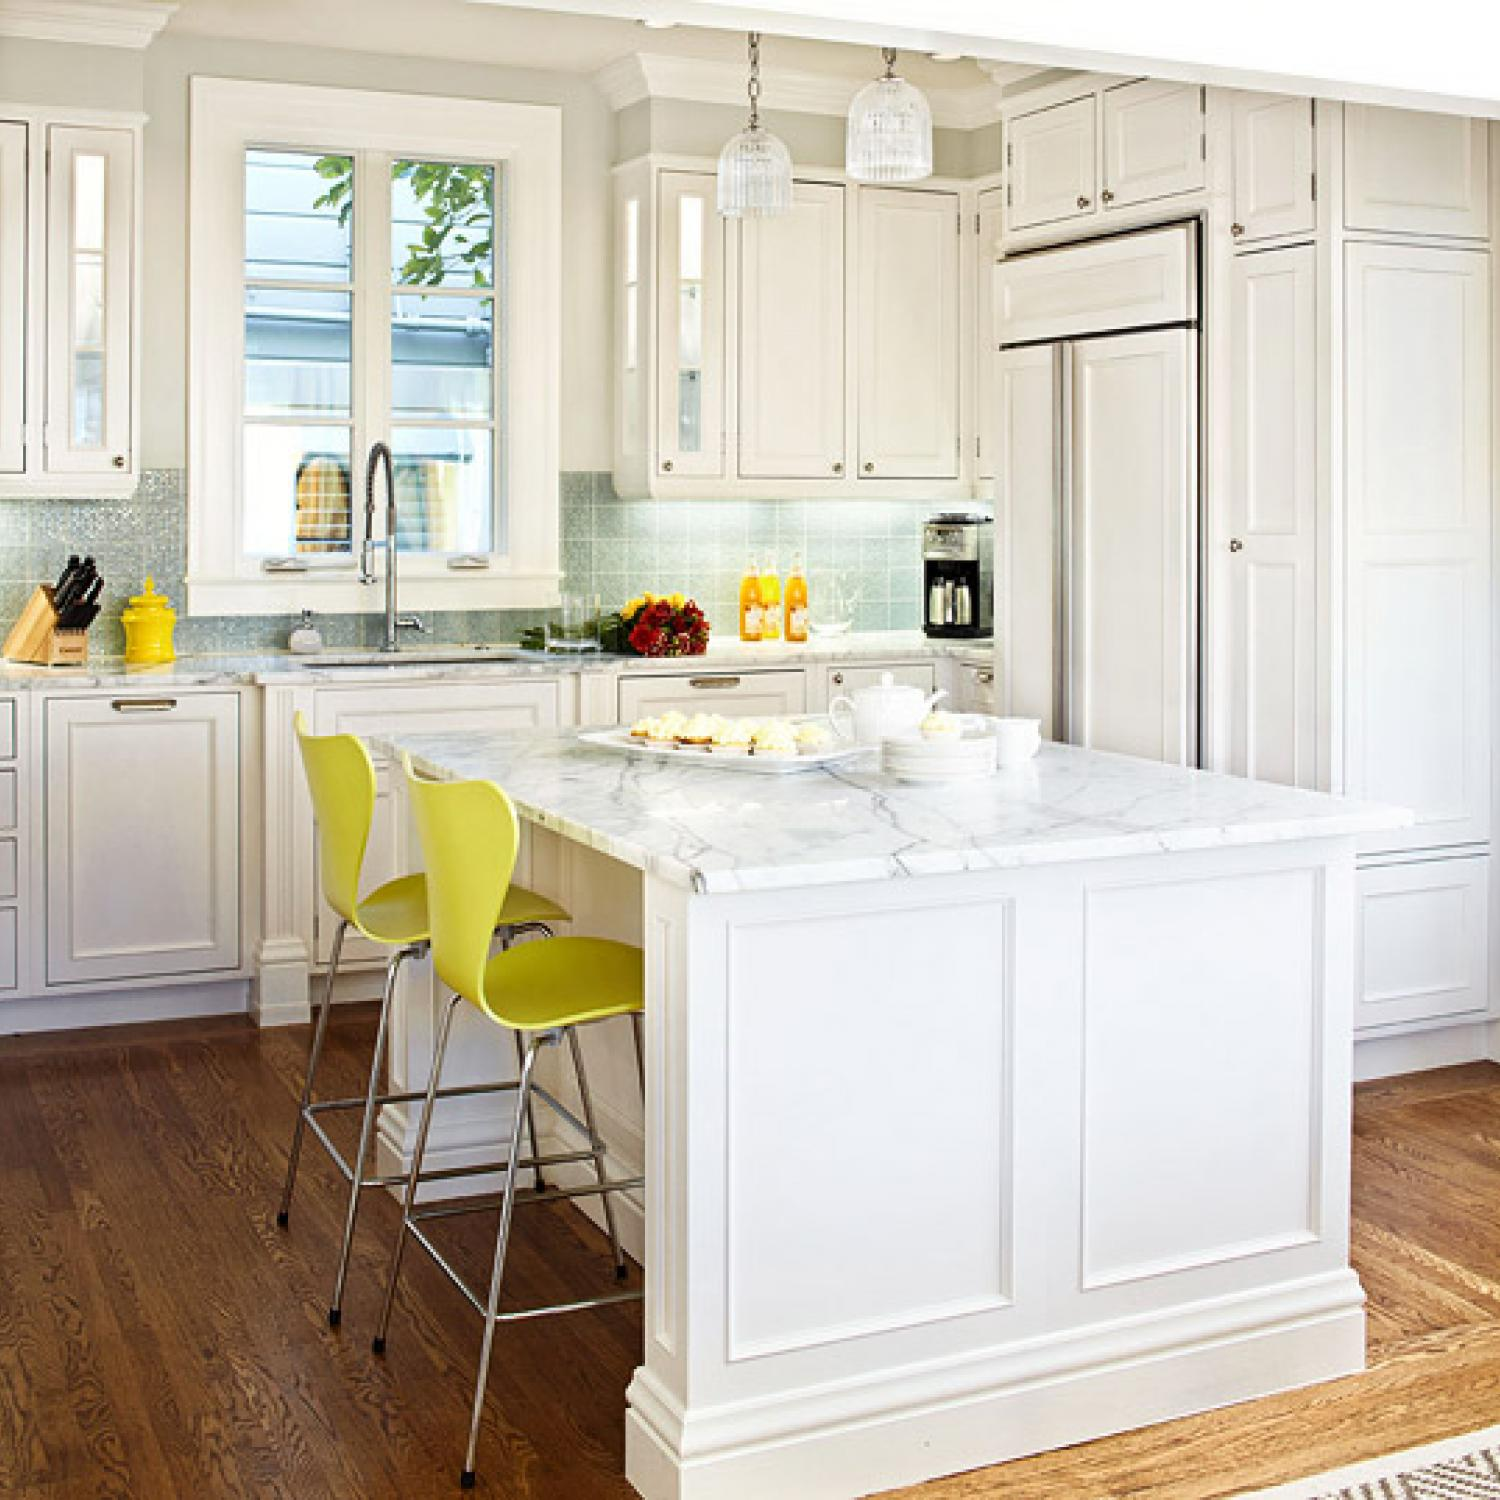 Material For Kitchen Cabinet: Design Ideas For White Kitchens